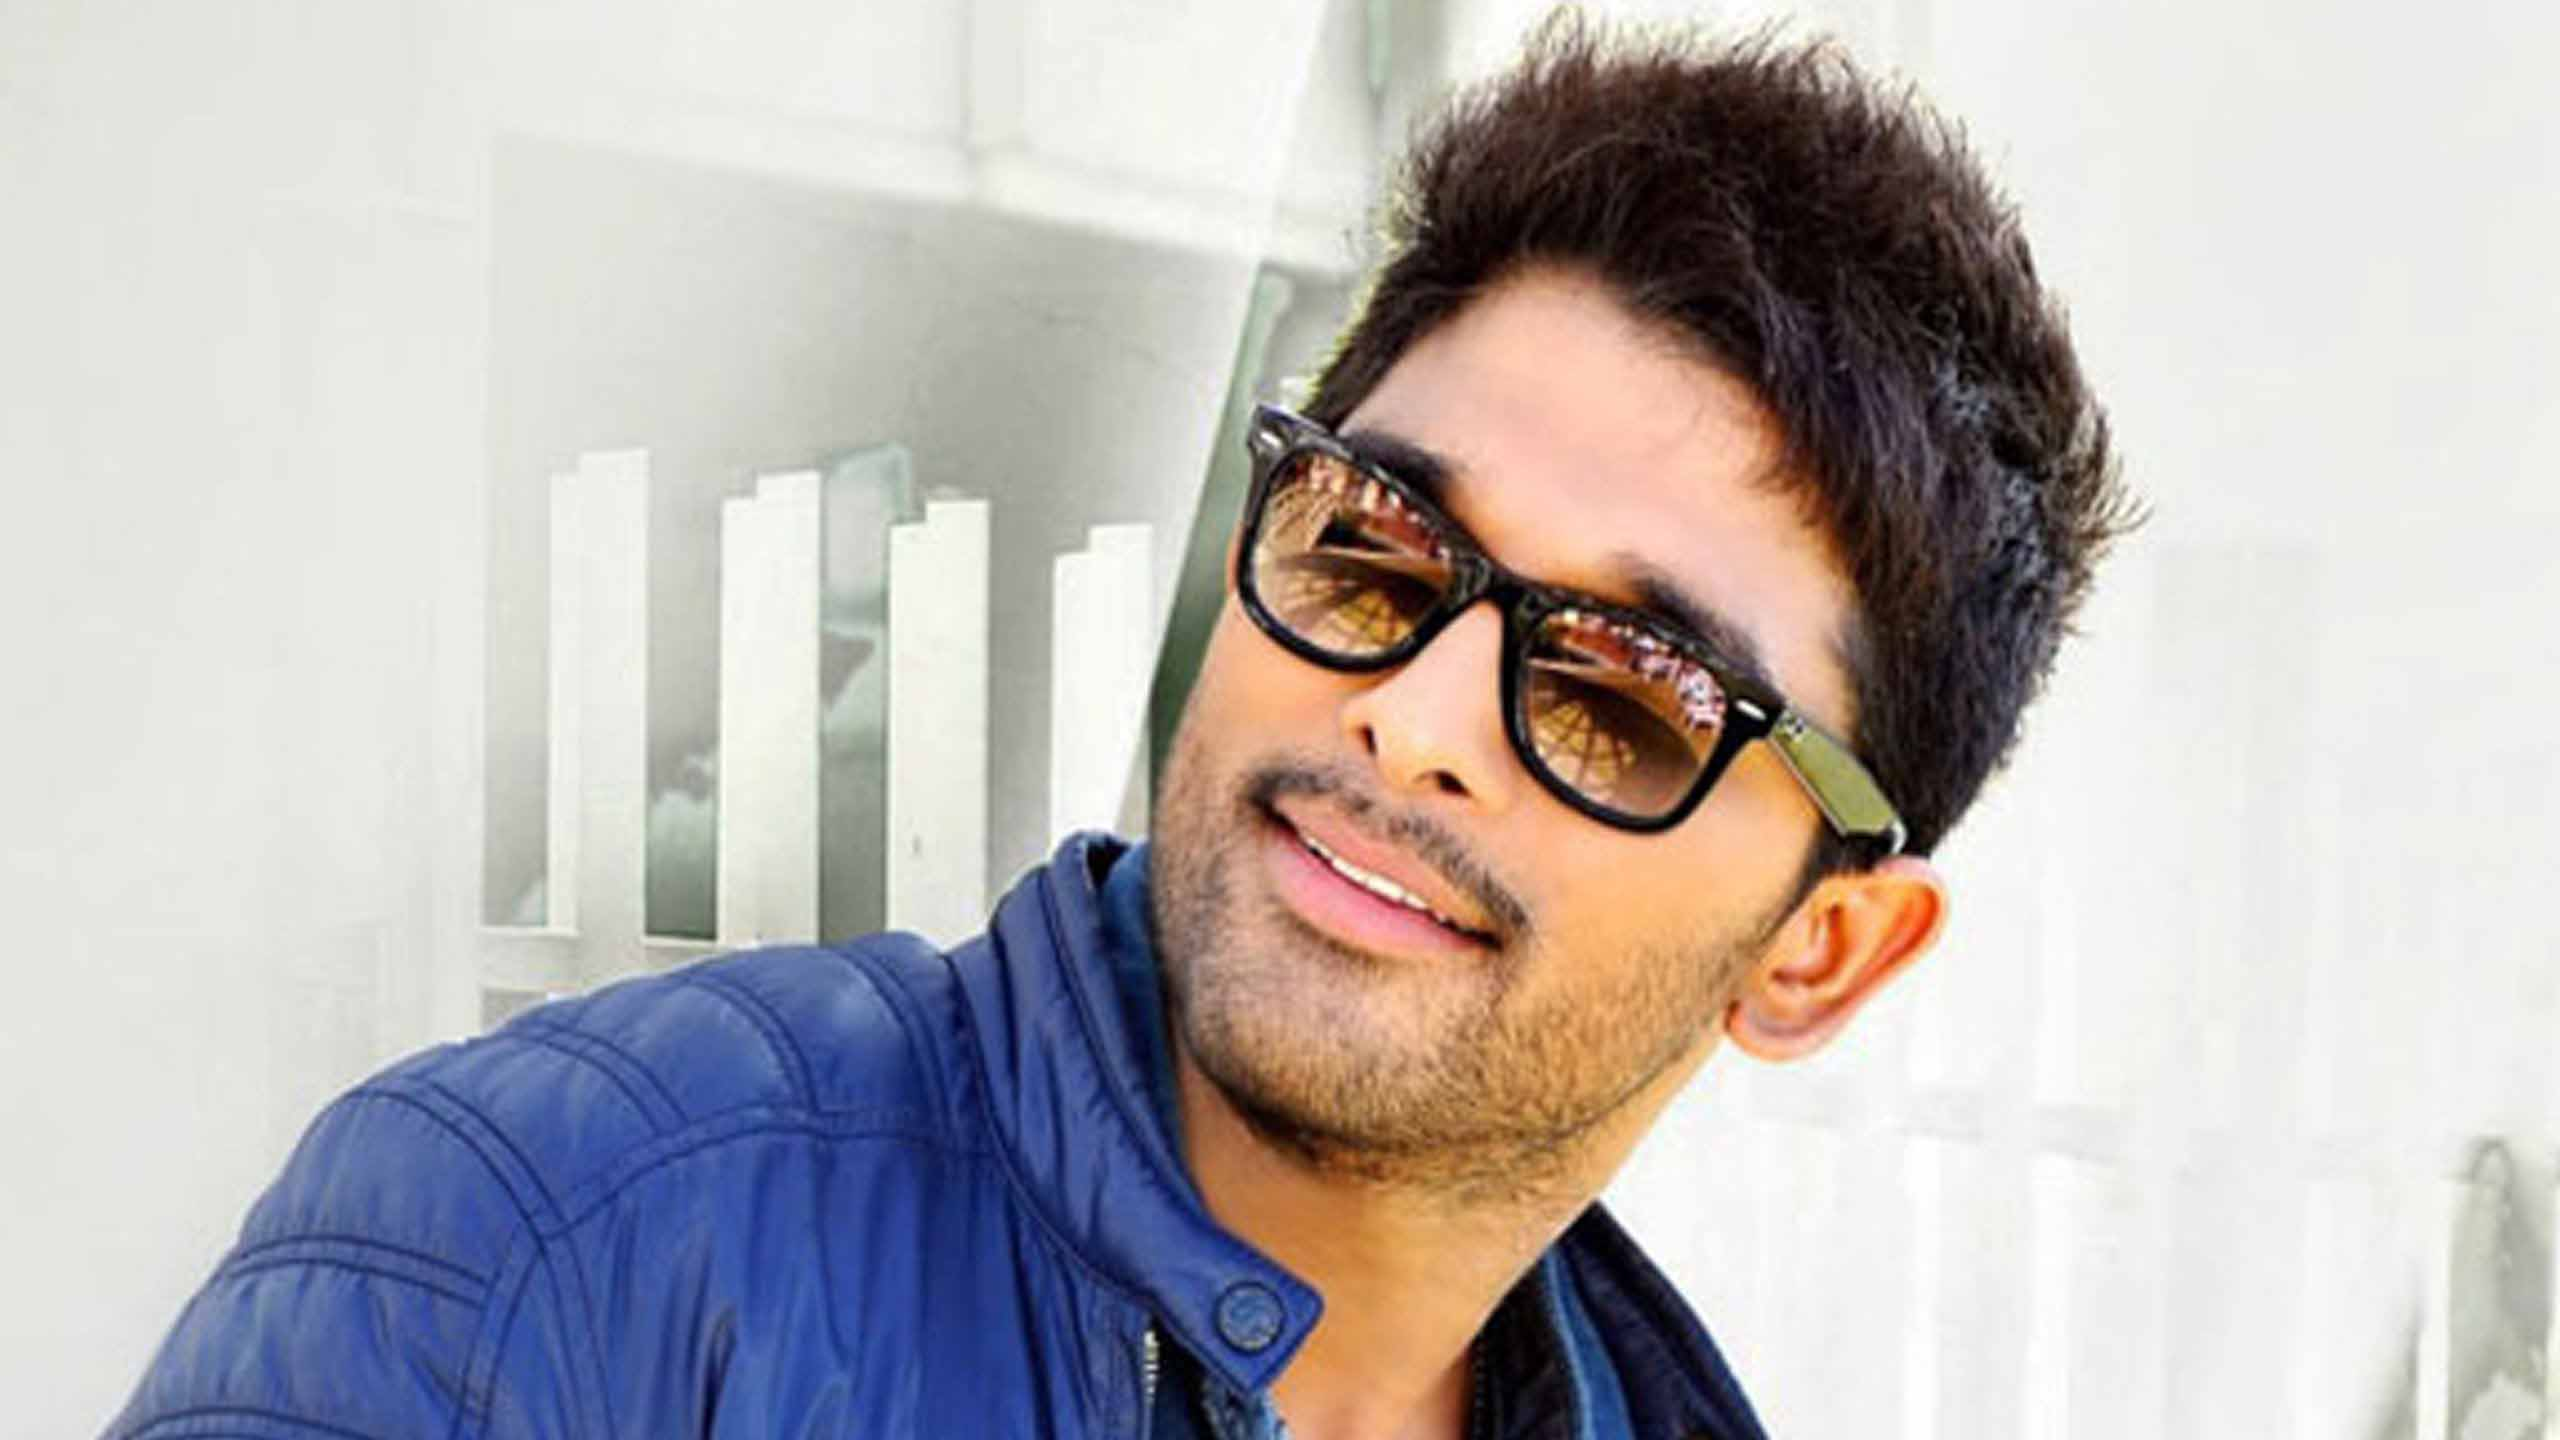 Allu arjun latest hd images download free